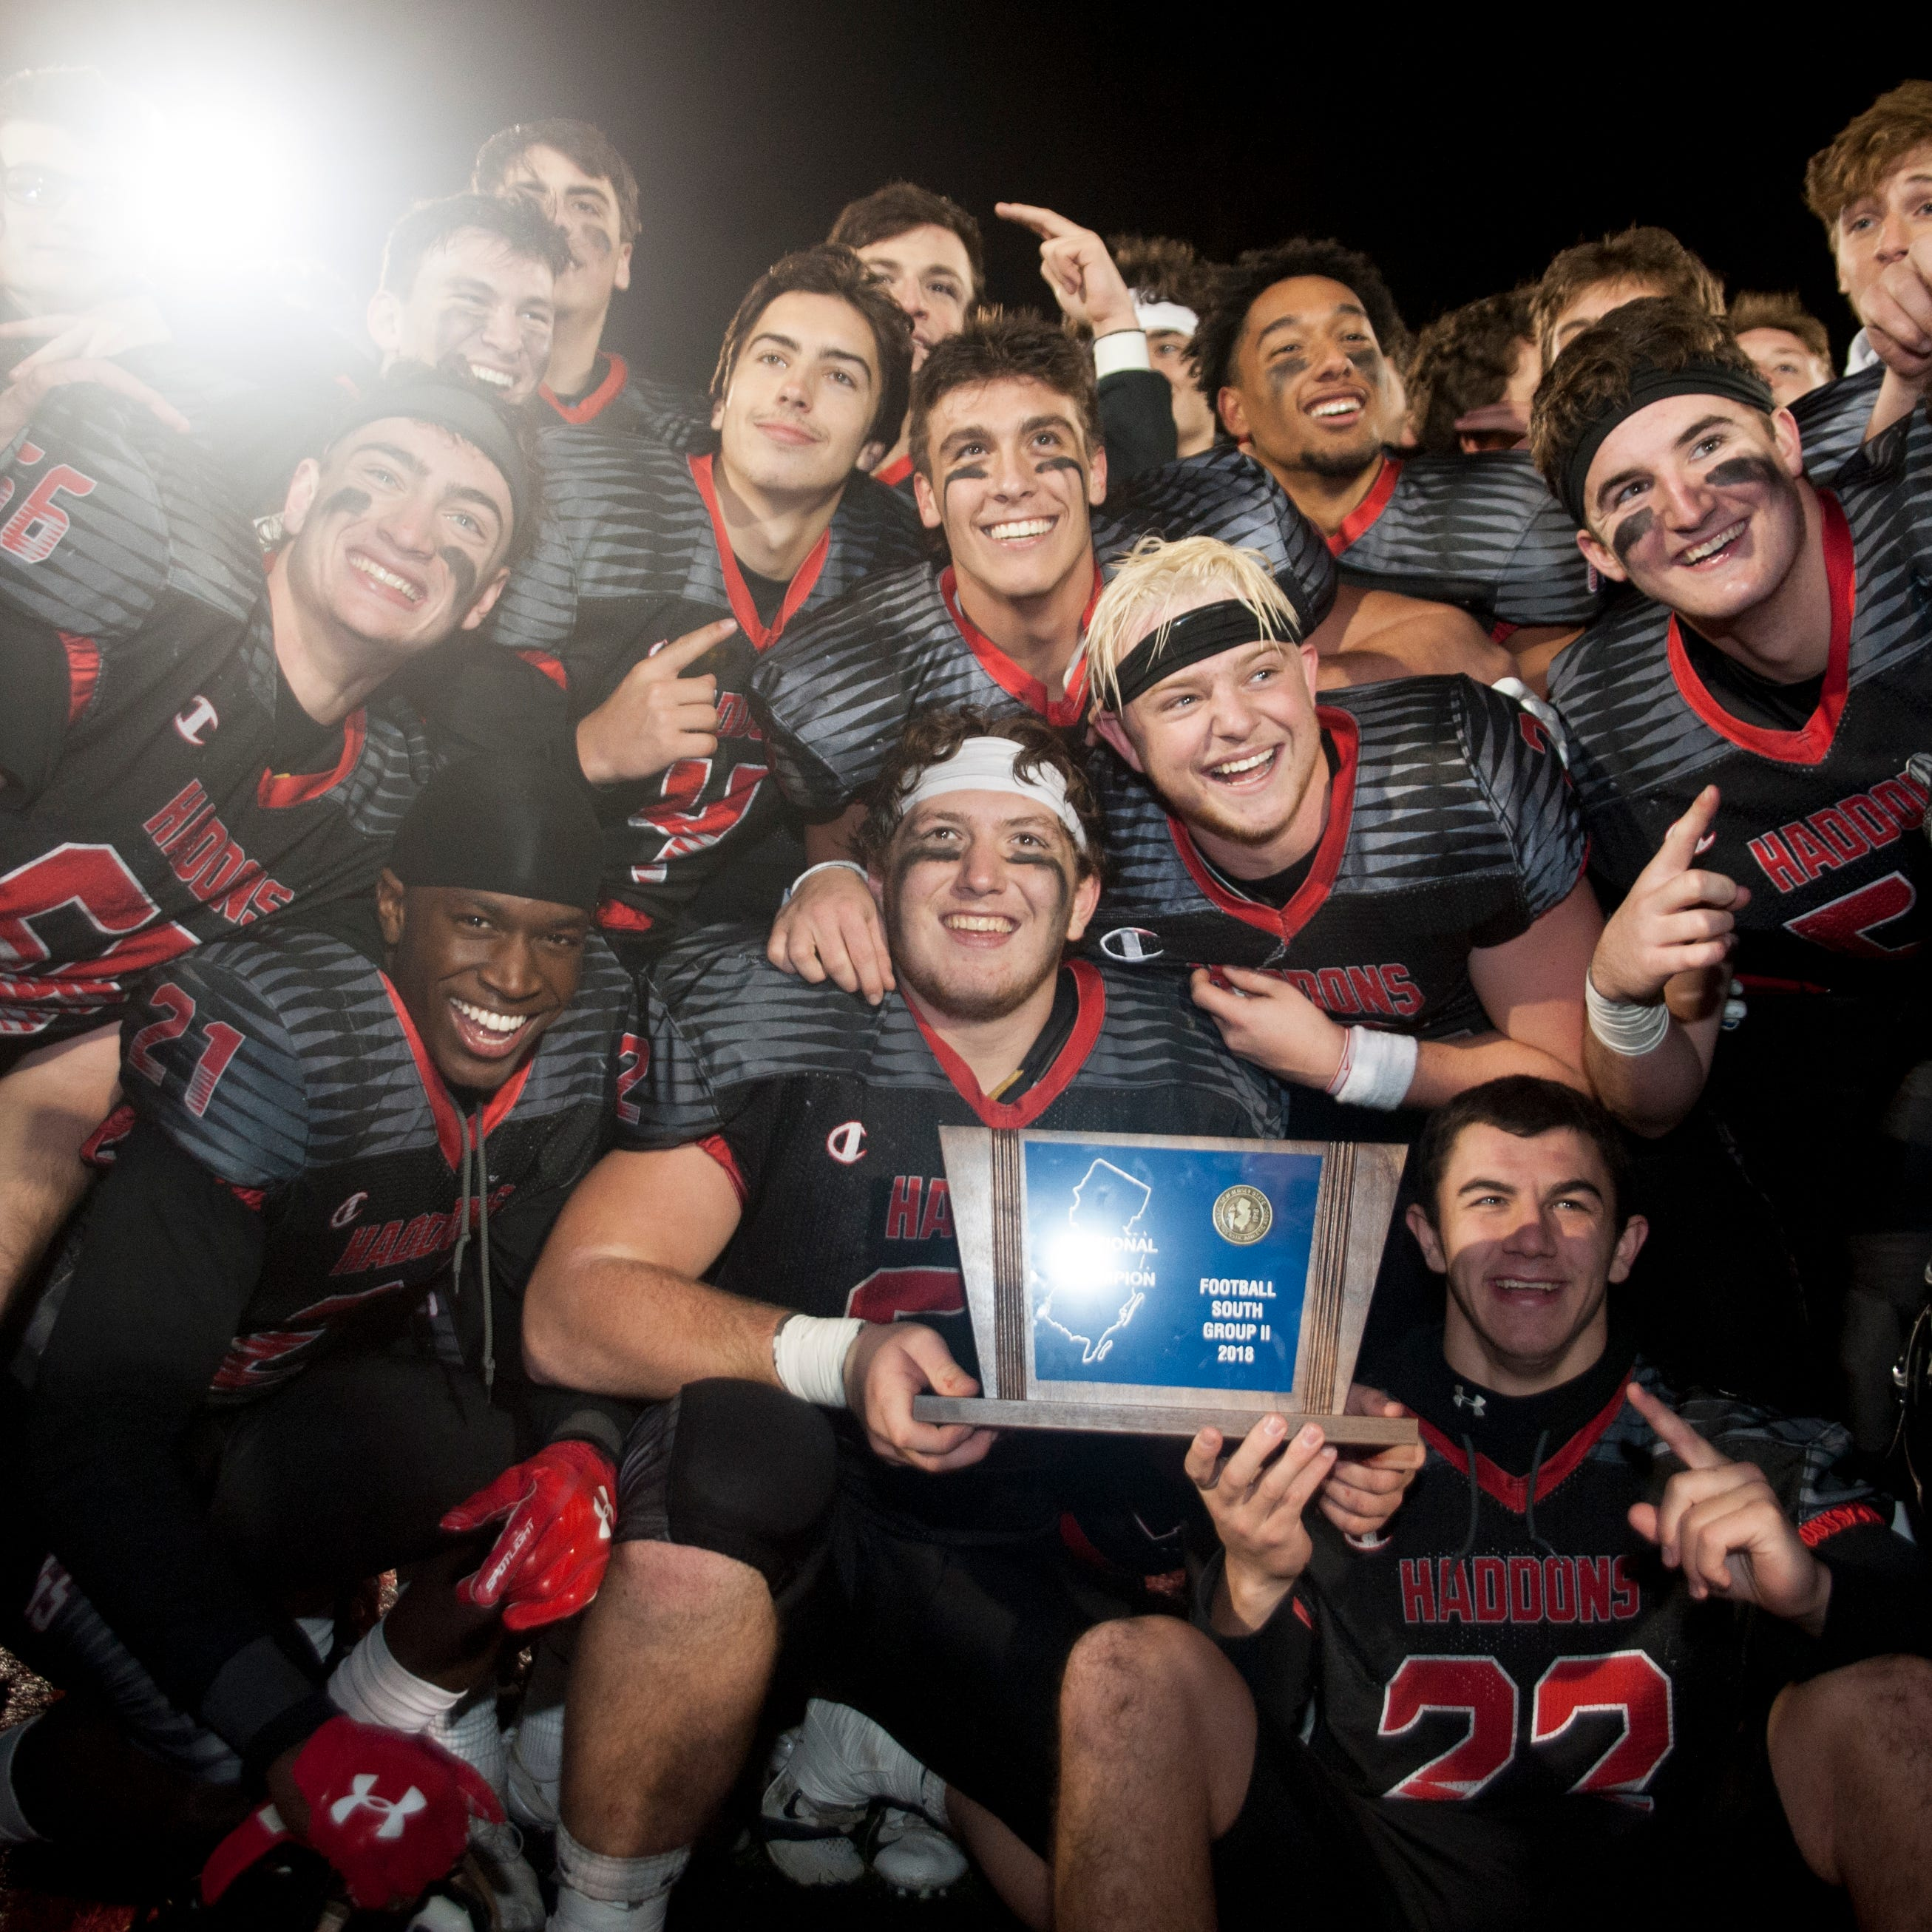 South Jersey Football: Haddonfield repeats as champs with 23-12 win over Camden